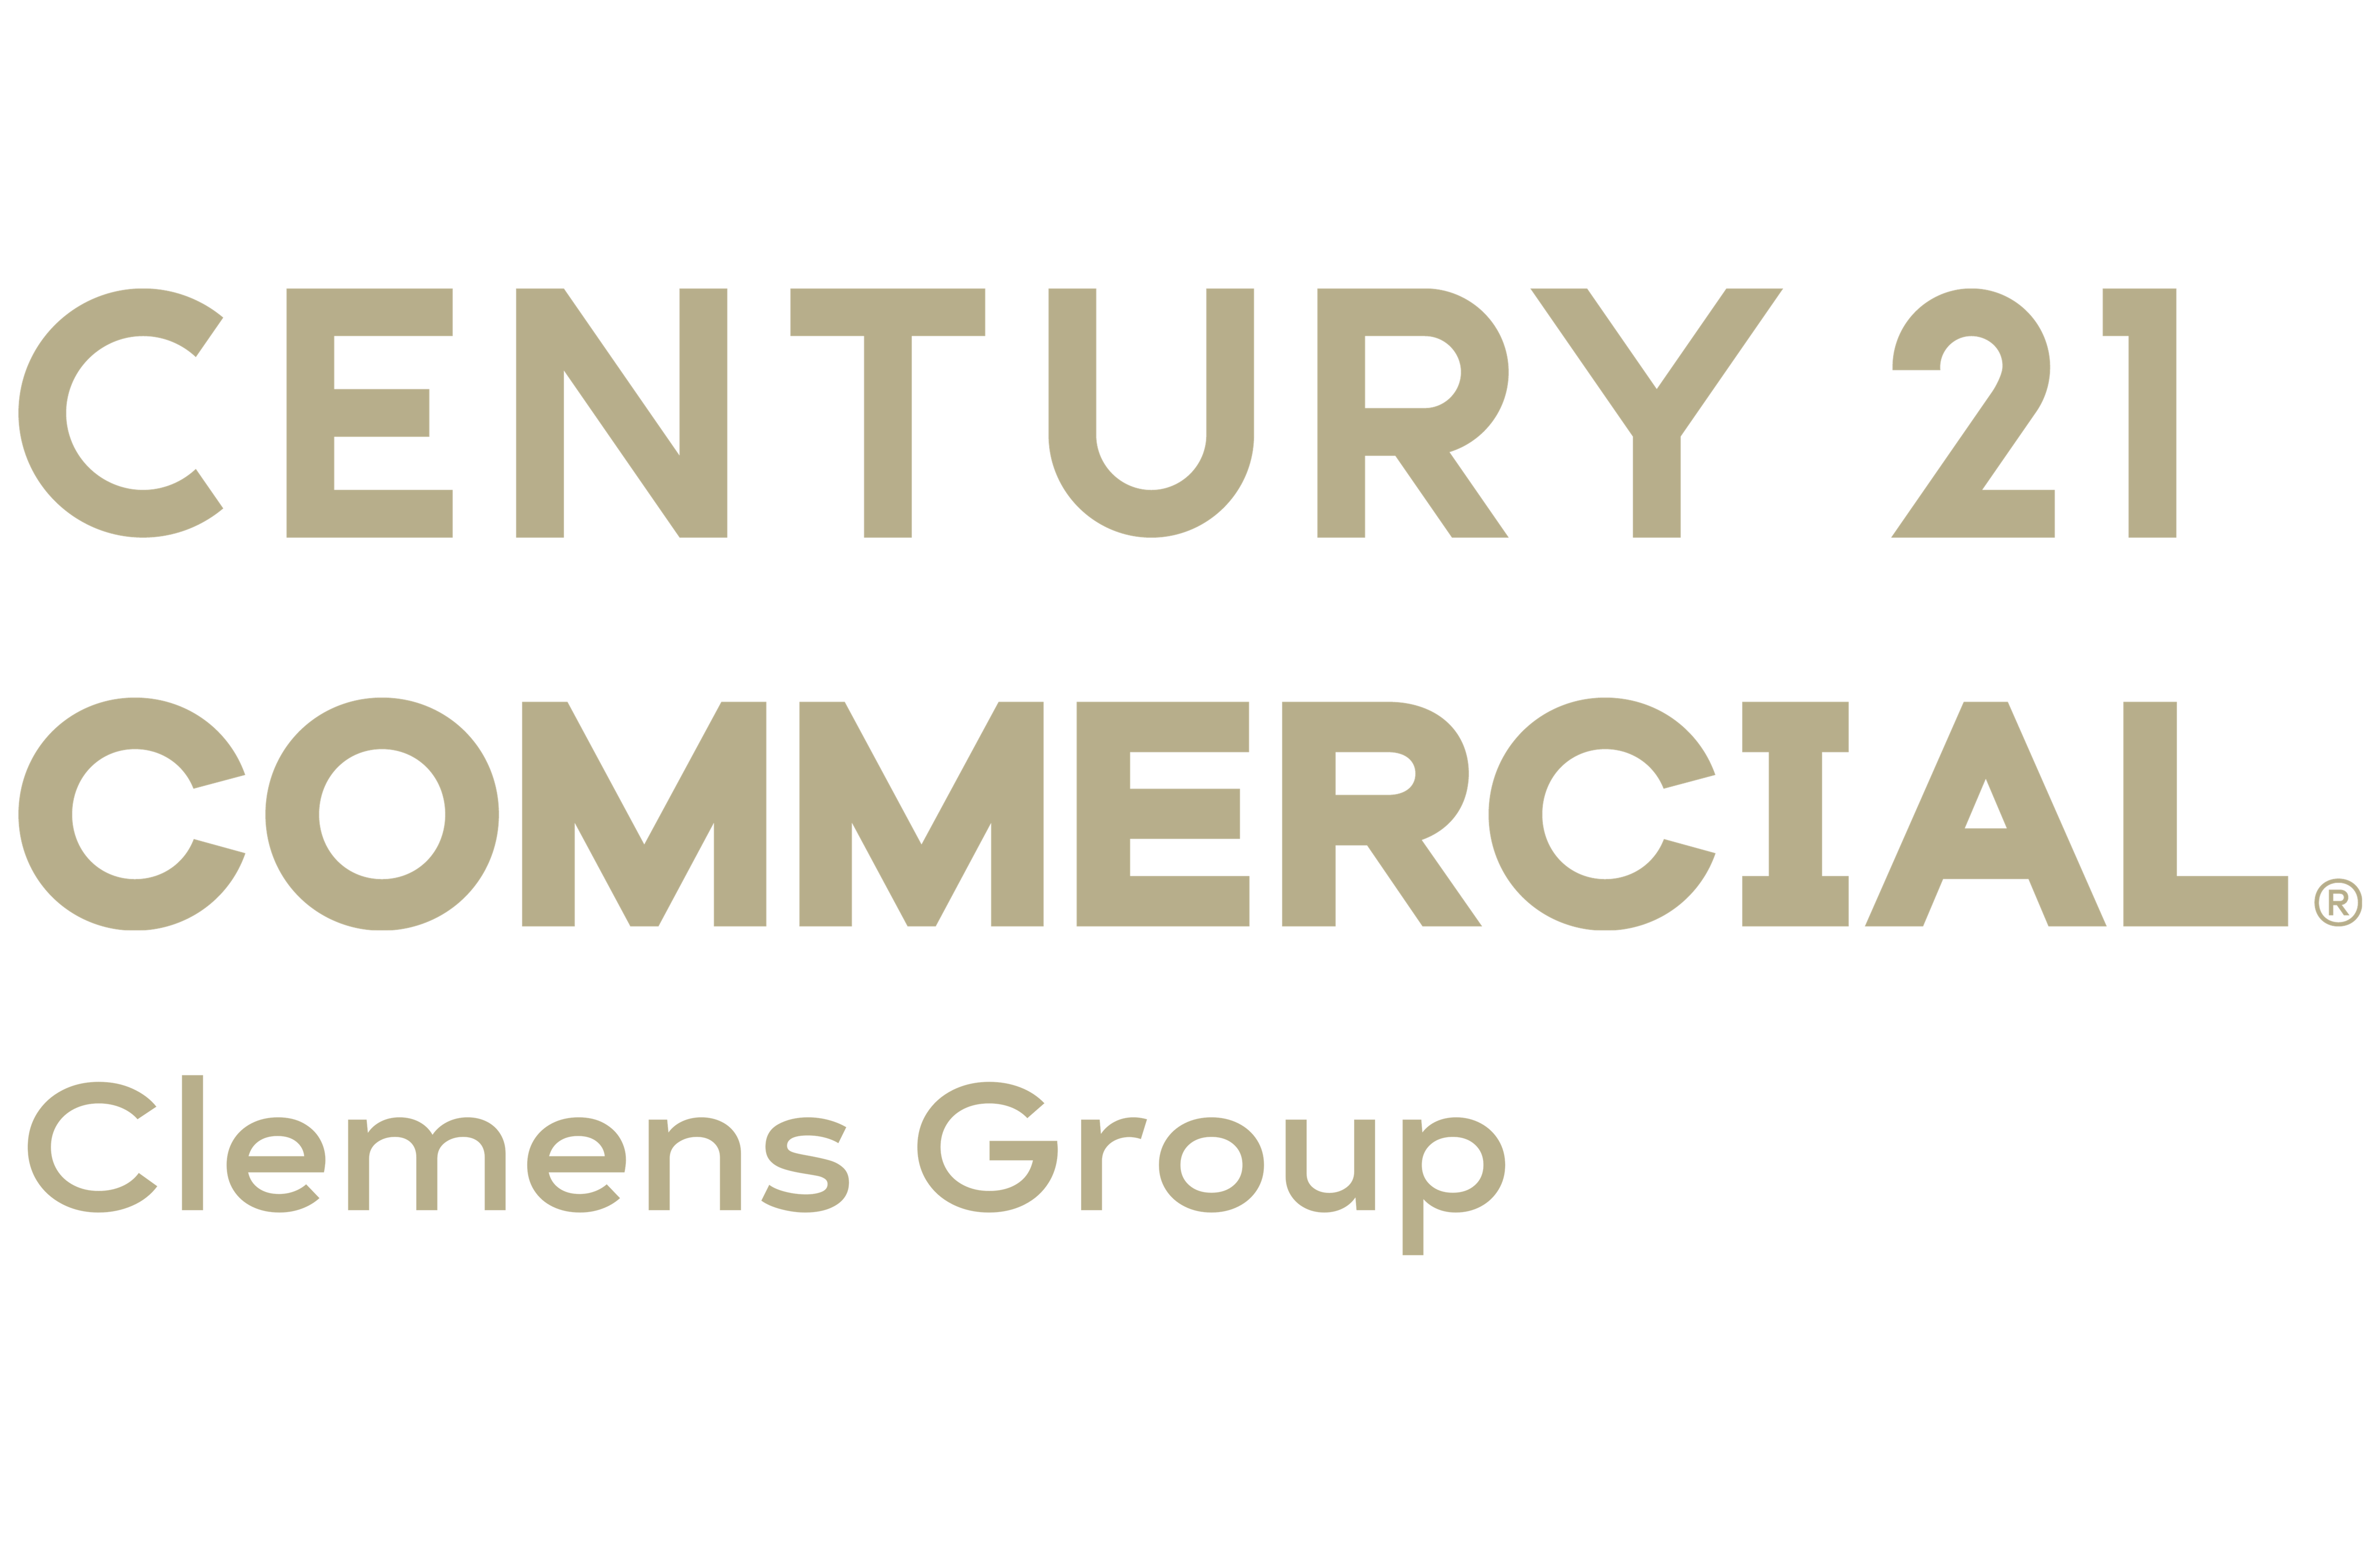 Curtiss Clemens Sr. of CENTURY 21 Clemens Group logo